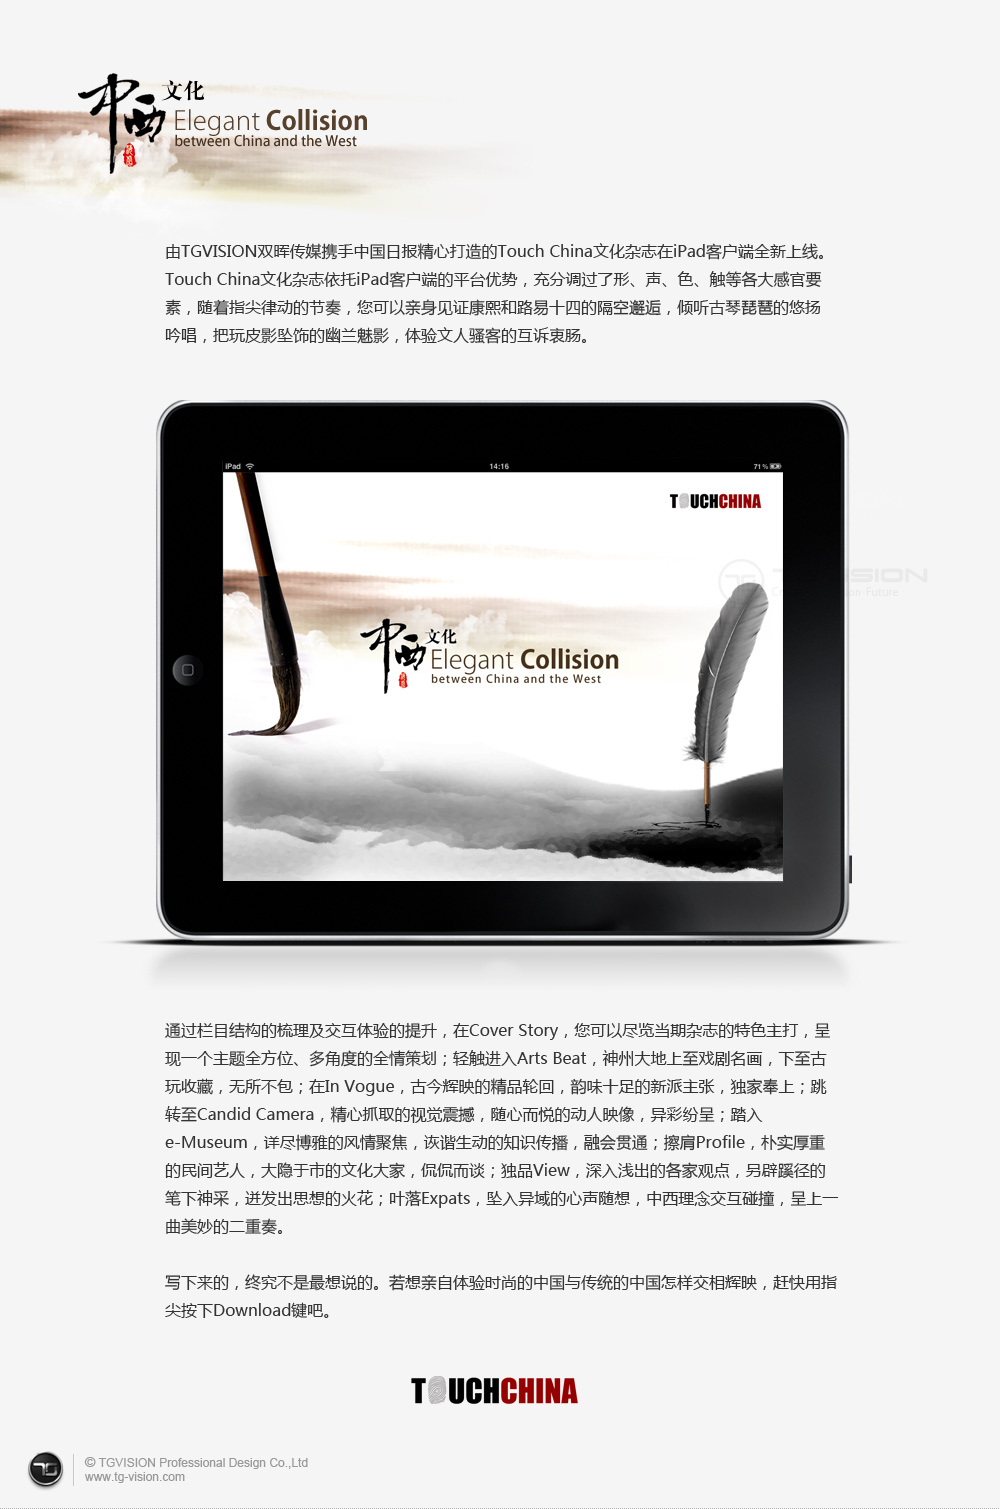 touchchina_p1.jpg